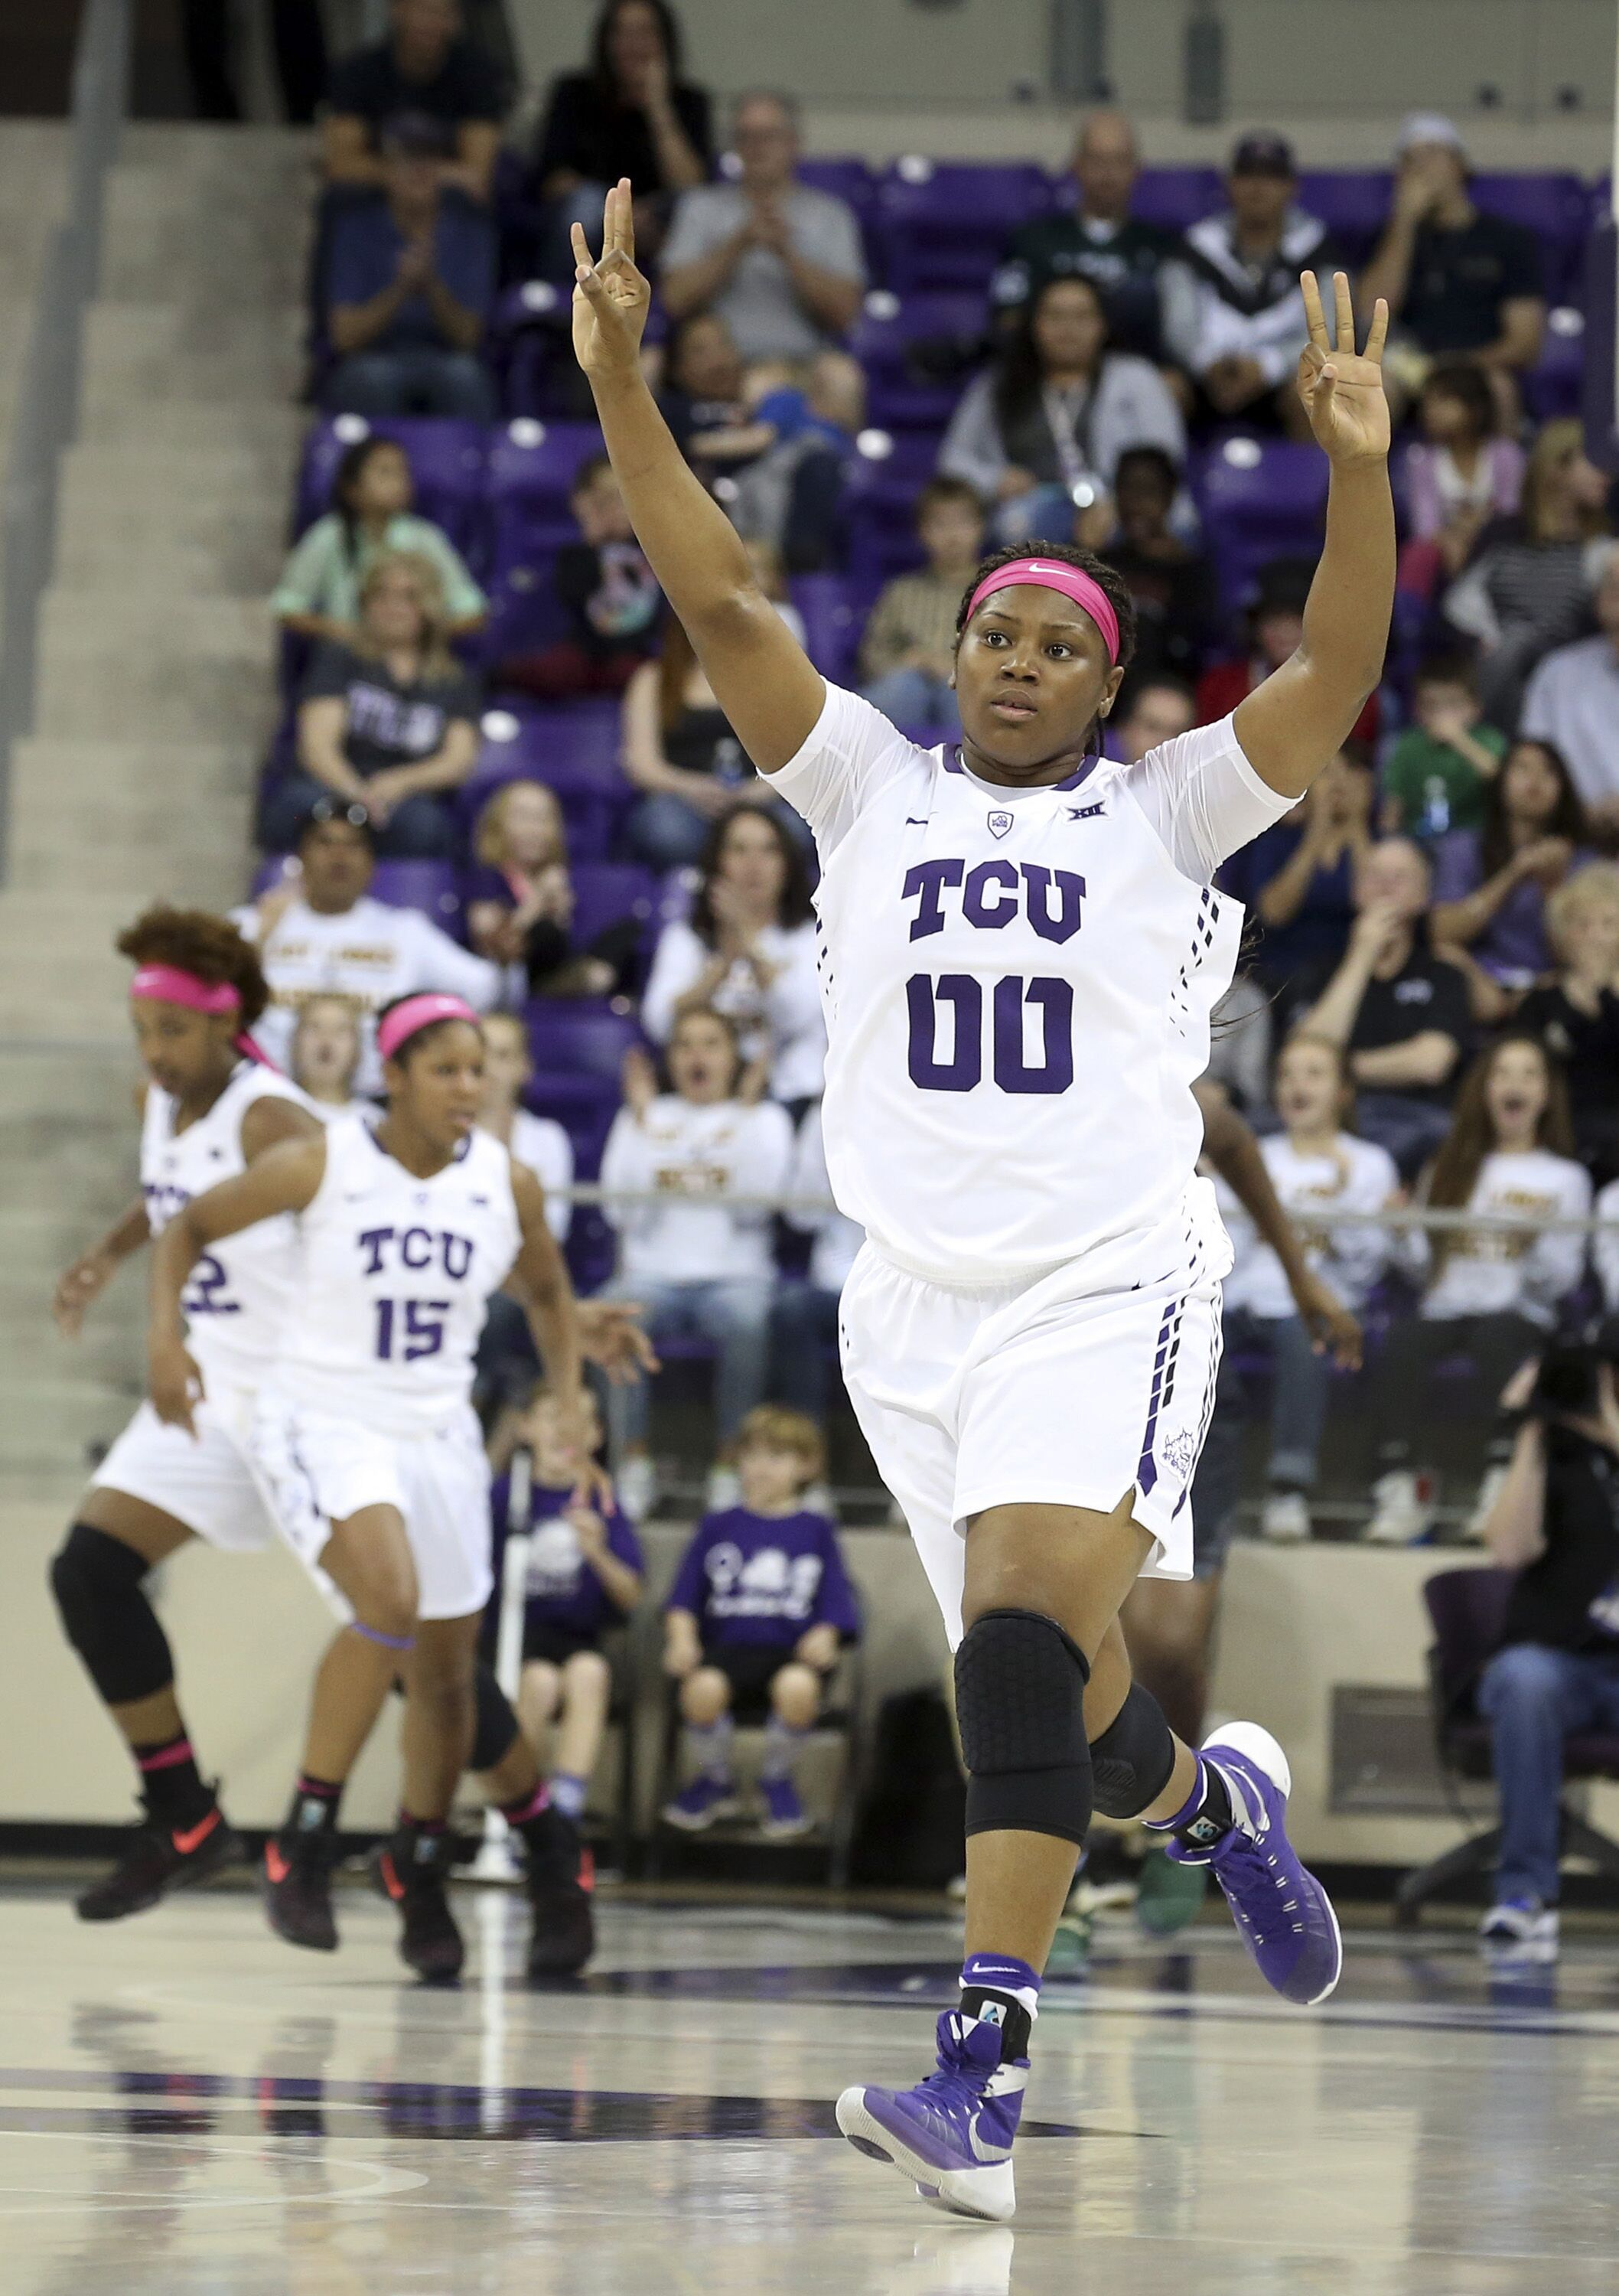 Image result for tcu 00